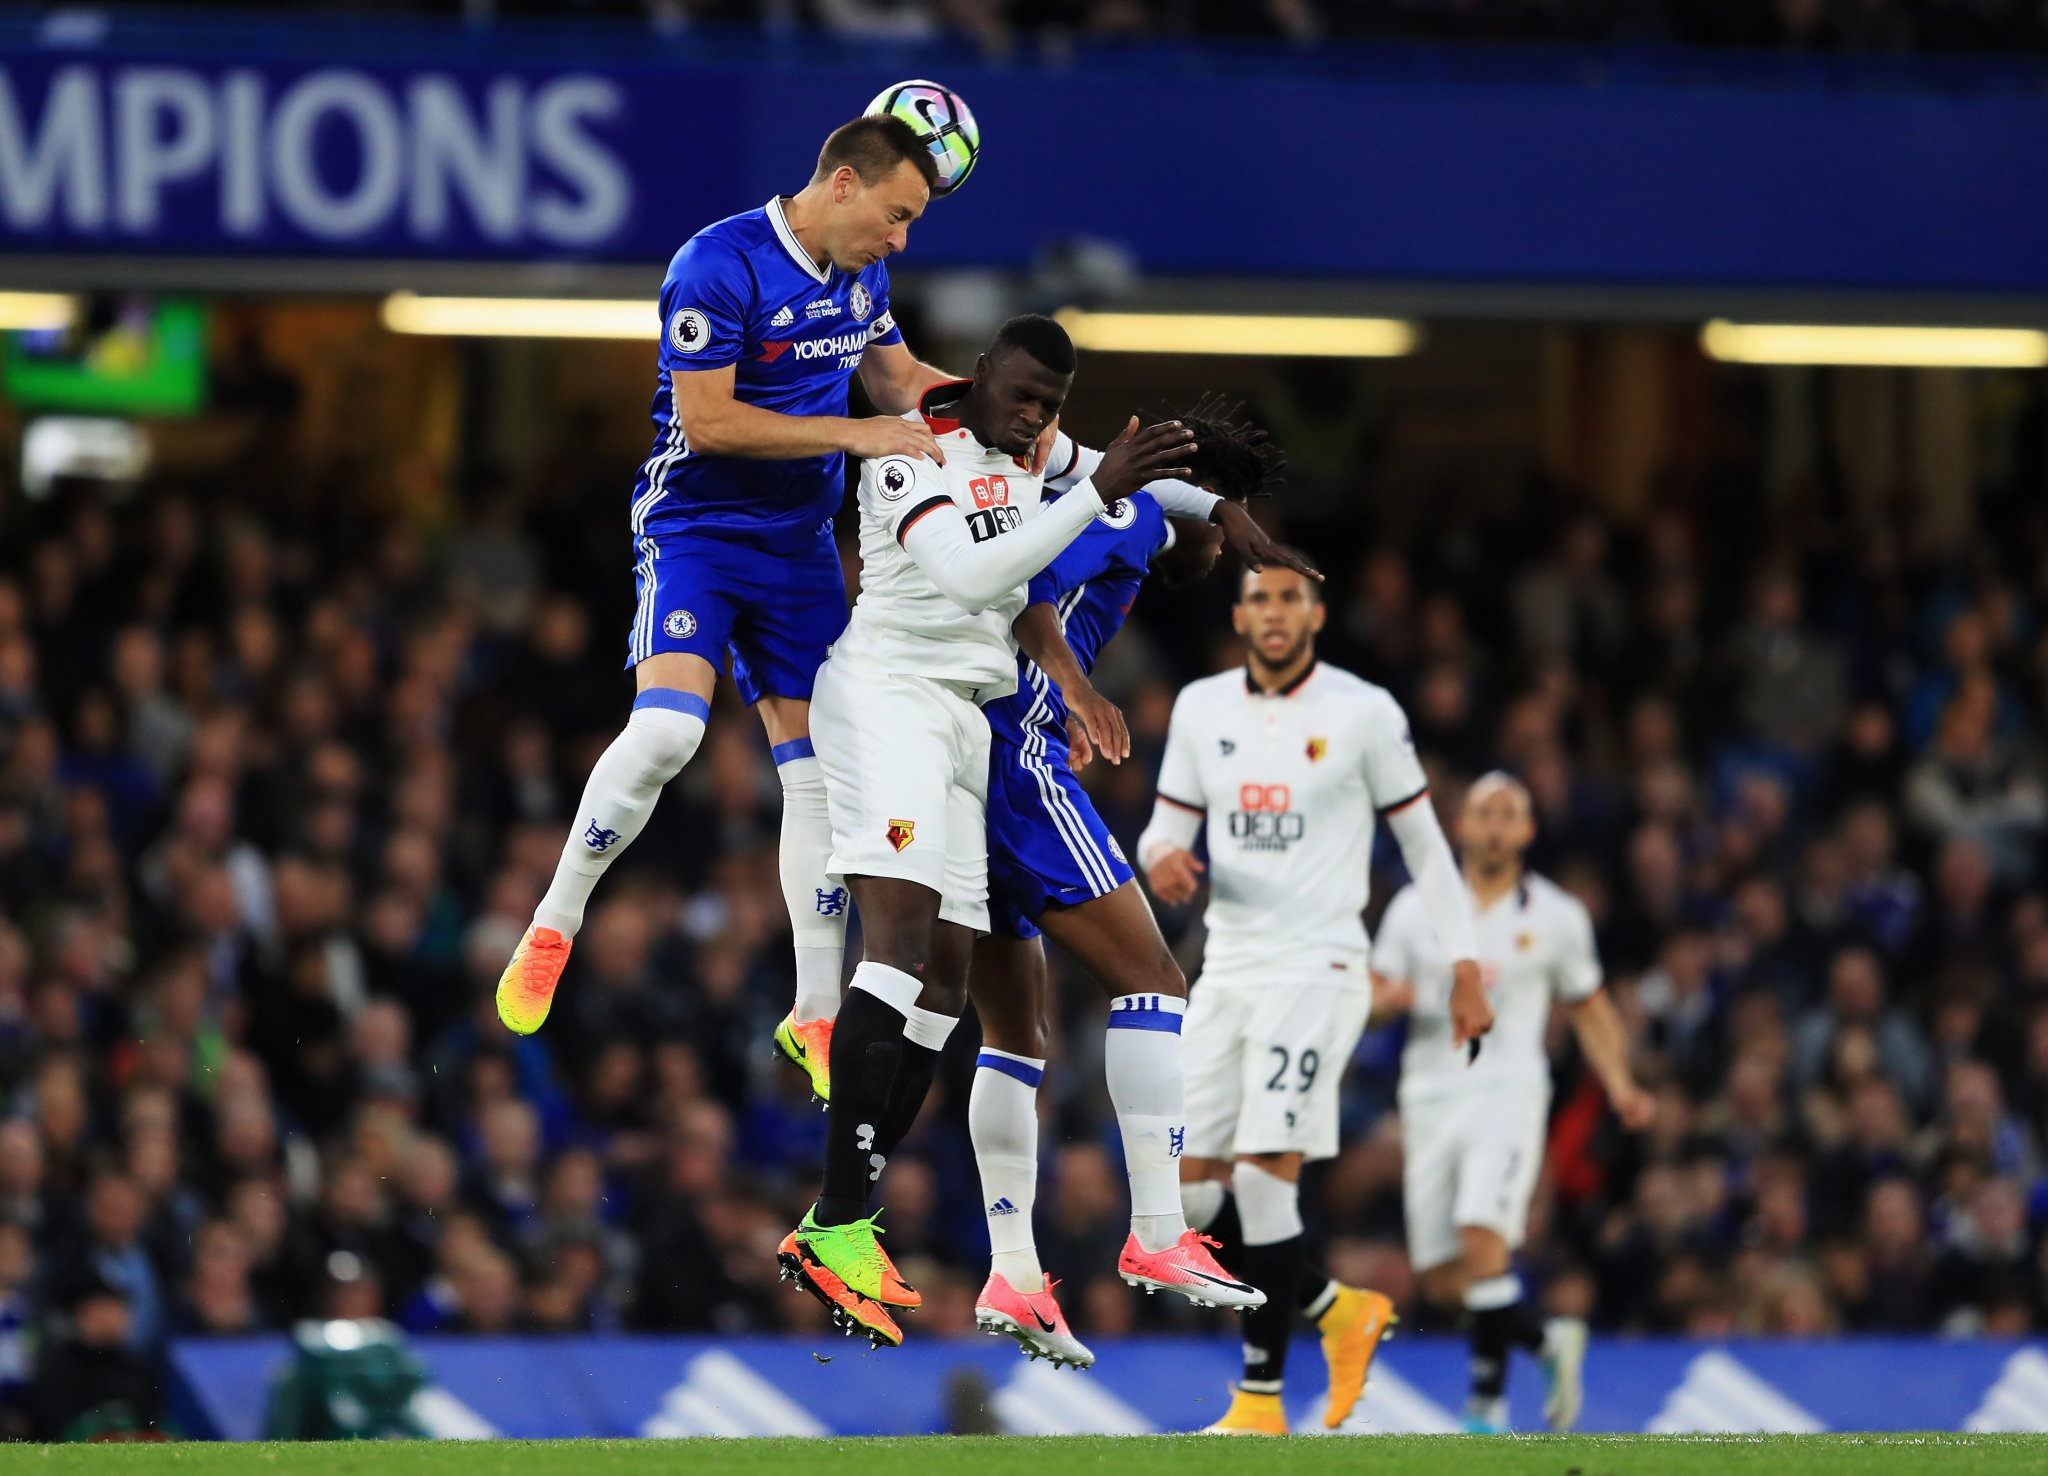 Moses Rested, Aina Subbed On As Champions Chelsea Edge Watford